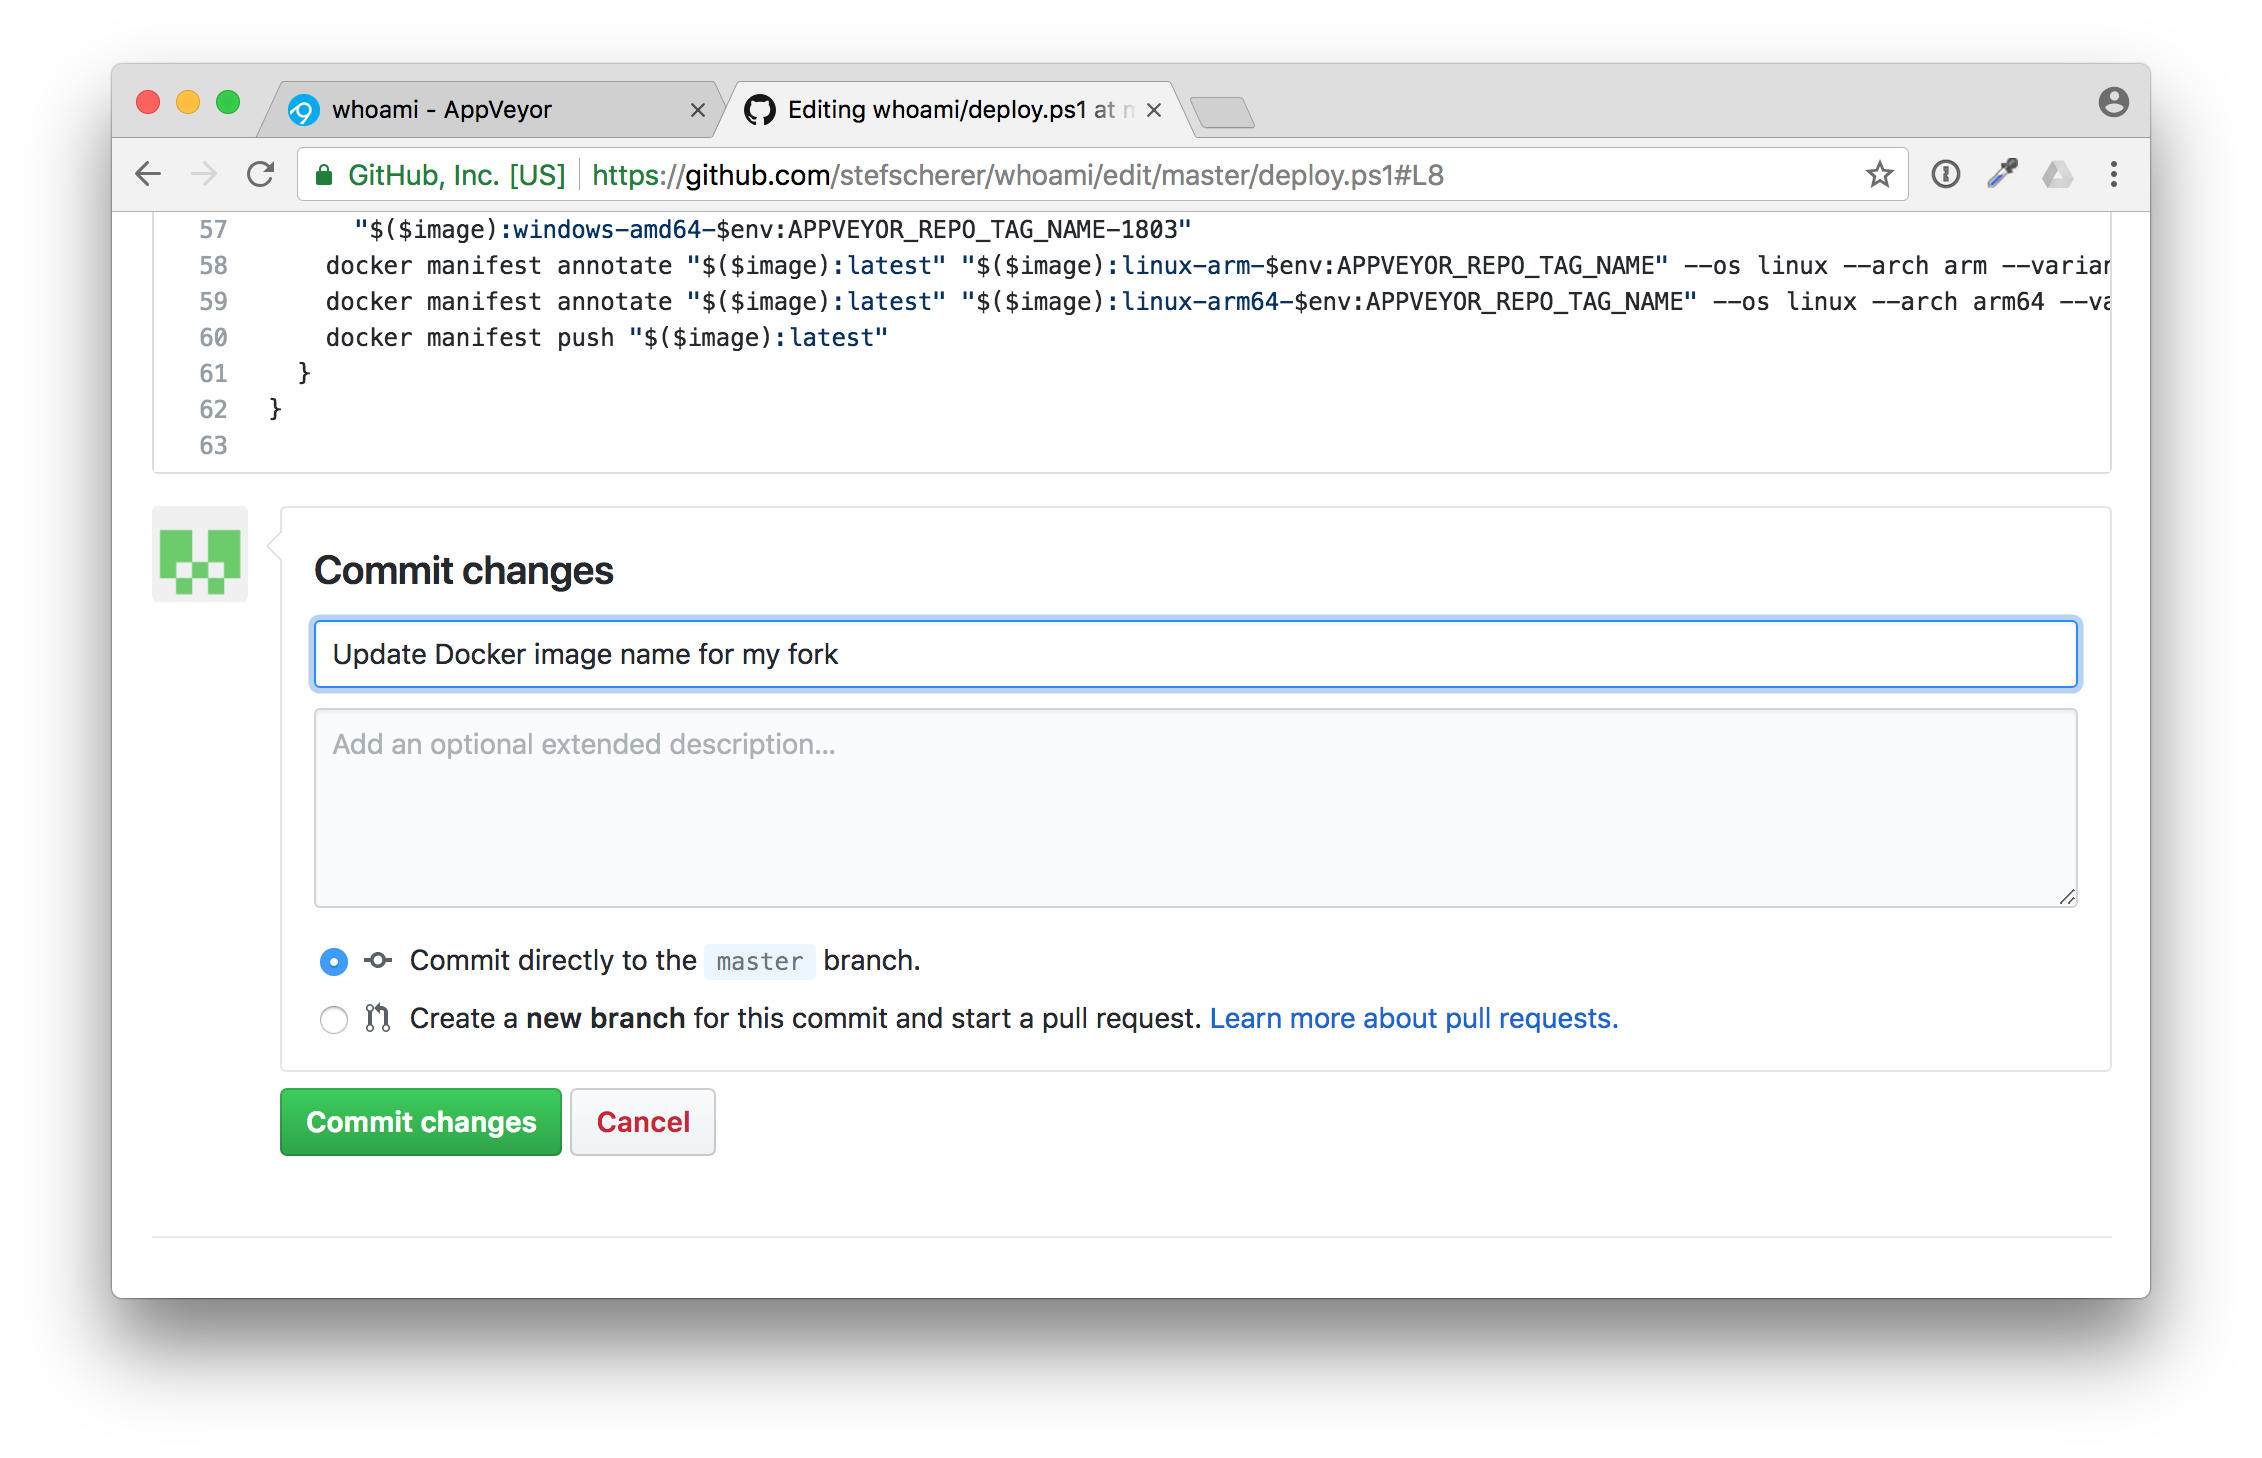 github-commit-changes-deploy-ps1